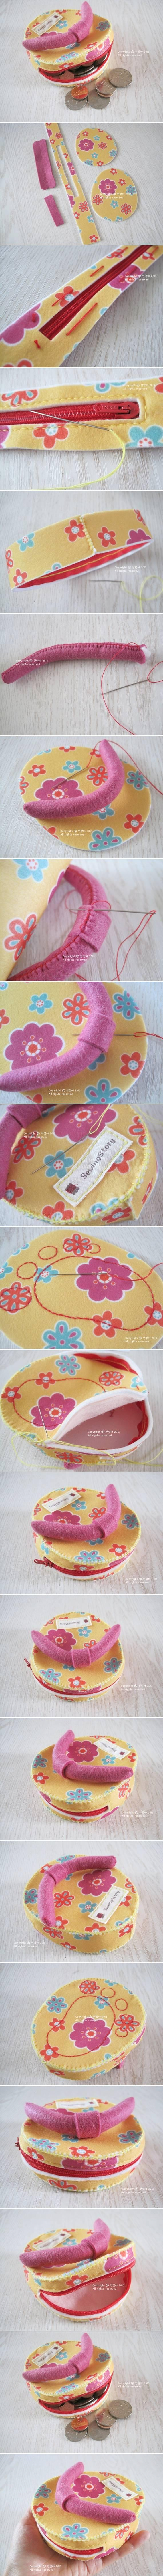 DIY Cute Flip Flop Coin Purse DIY Projects | UsefulDIY.com